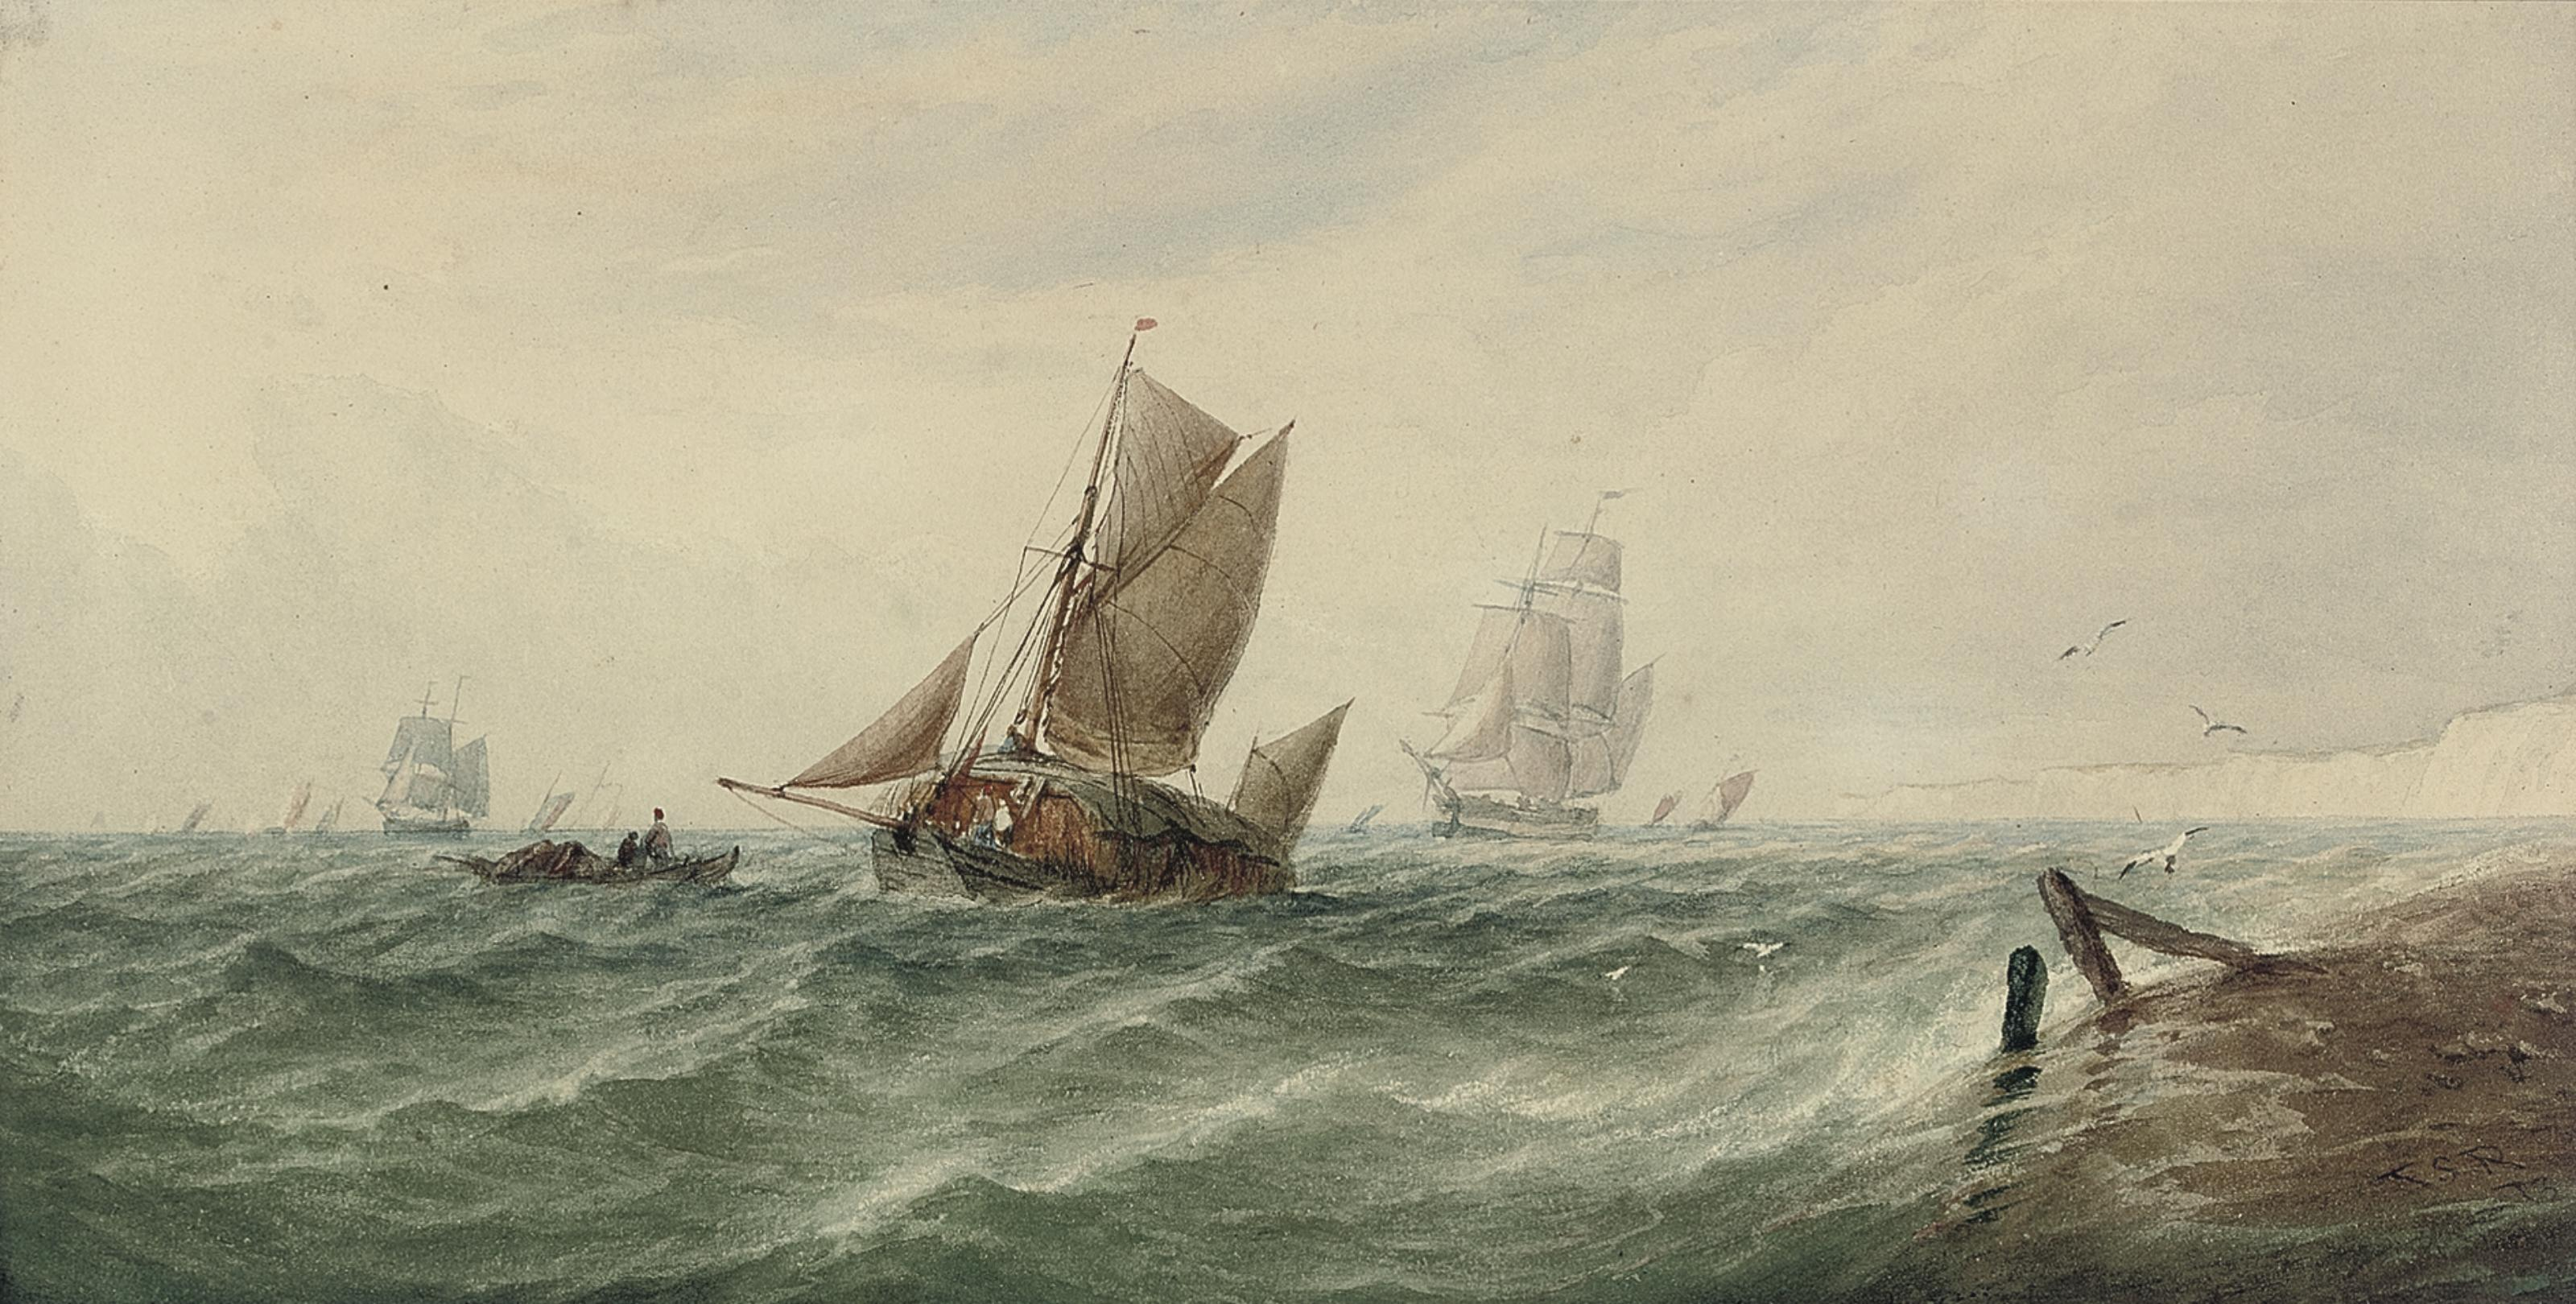 A loaded hay barge and other shipping in choppy waters off the White Cliffs of Dover